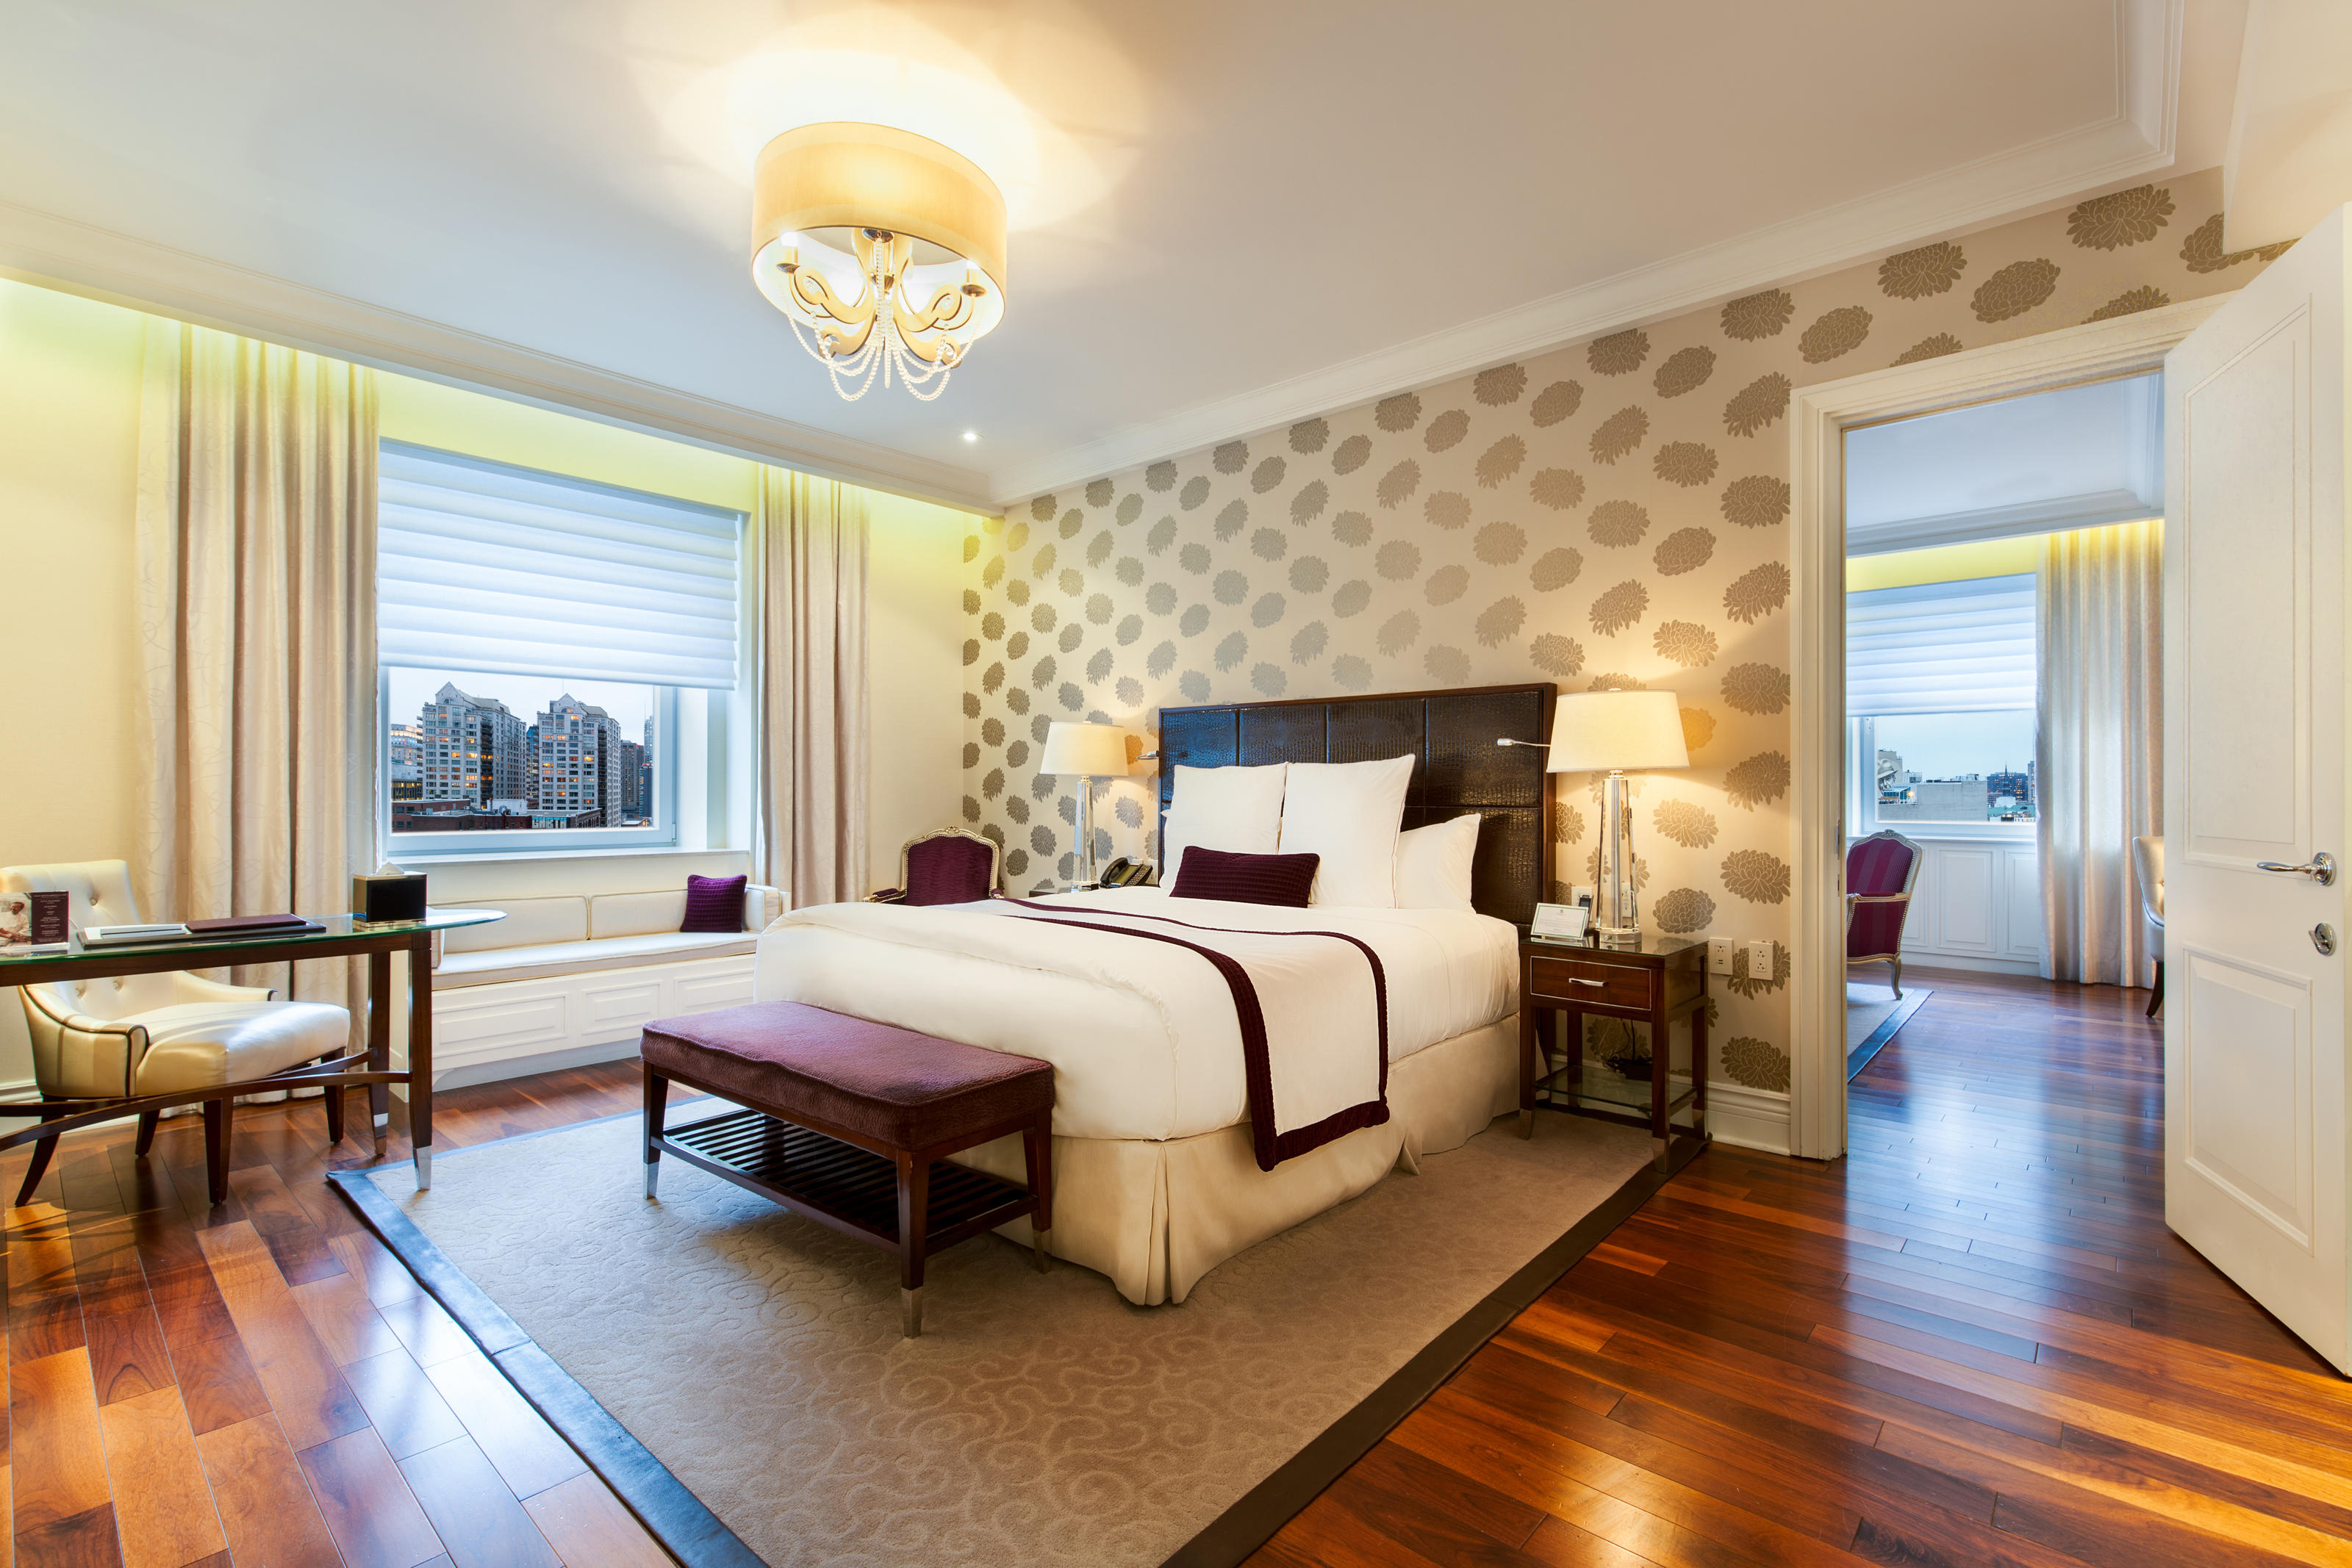 The Ritz-Carlton, Montreal à Montreal: Against sweeping views of Montréal, our One Bedroom Suite is of limitless inspiration and limited quantity—only one of these corner suites is available per fl oor. Lounge beside the original marble fi replace in a living room with a 47-inch LCD fl at-screen TV, complimentary Wi-Fi access and other modern amenities, then unplug in a spacious bathroom with a rain shower and soaking tub.